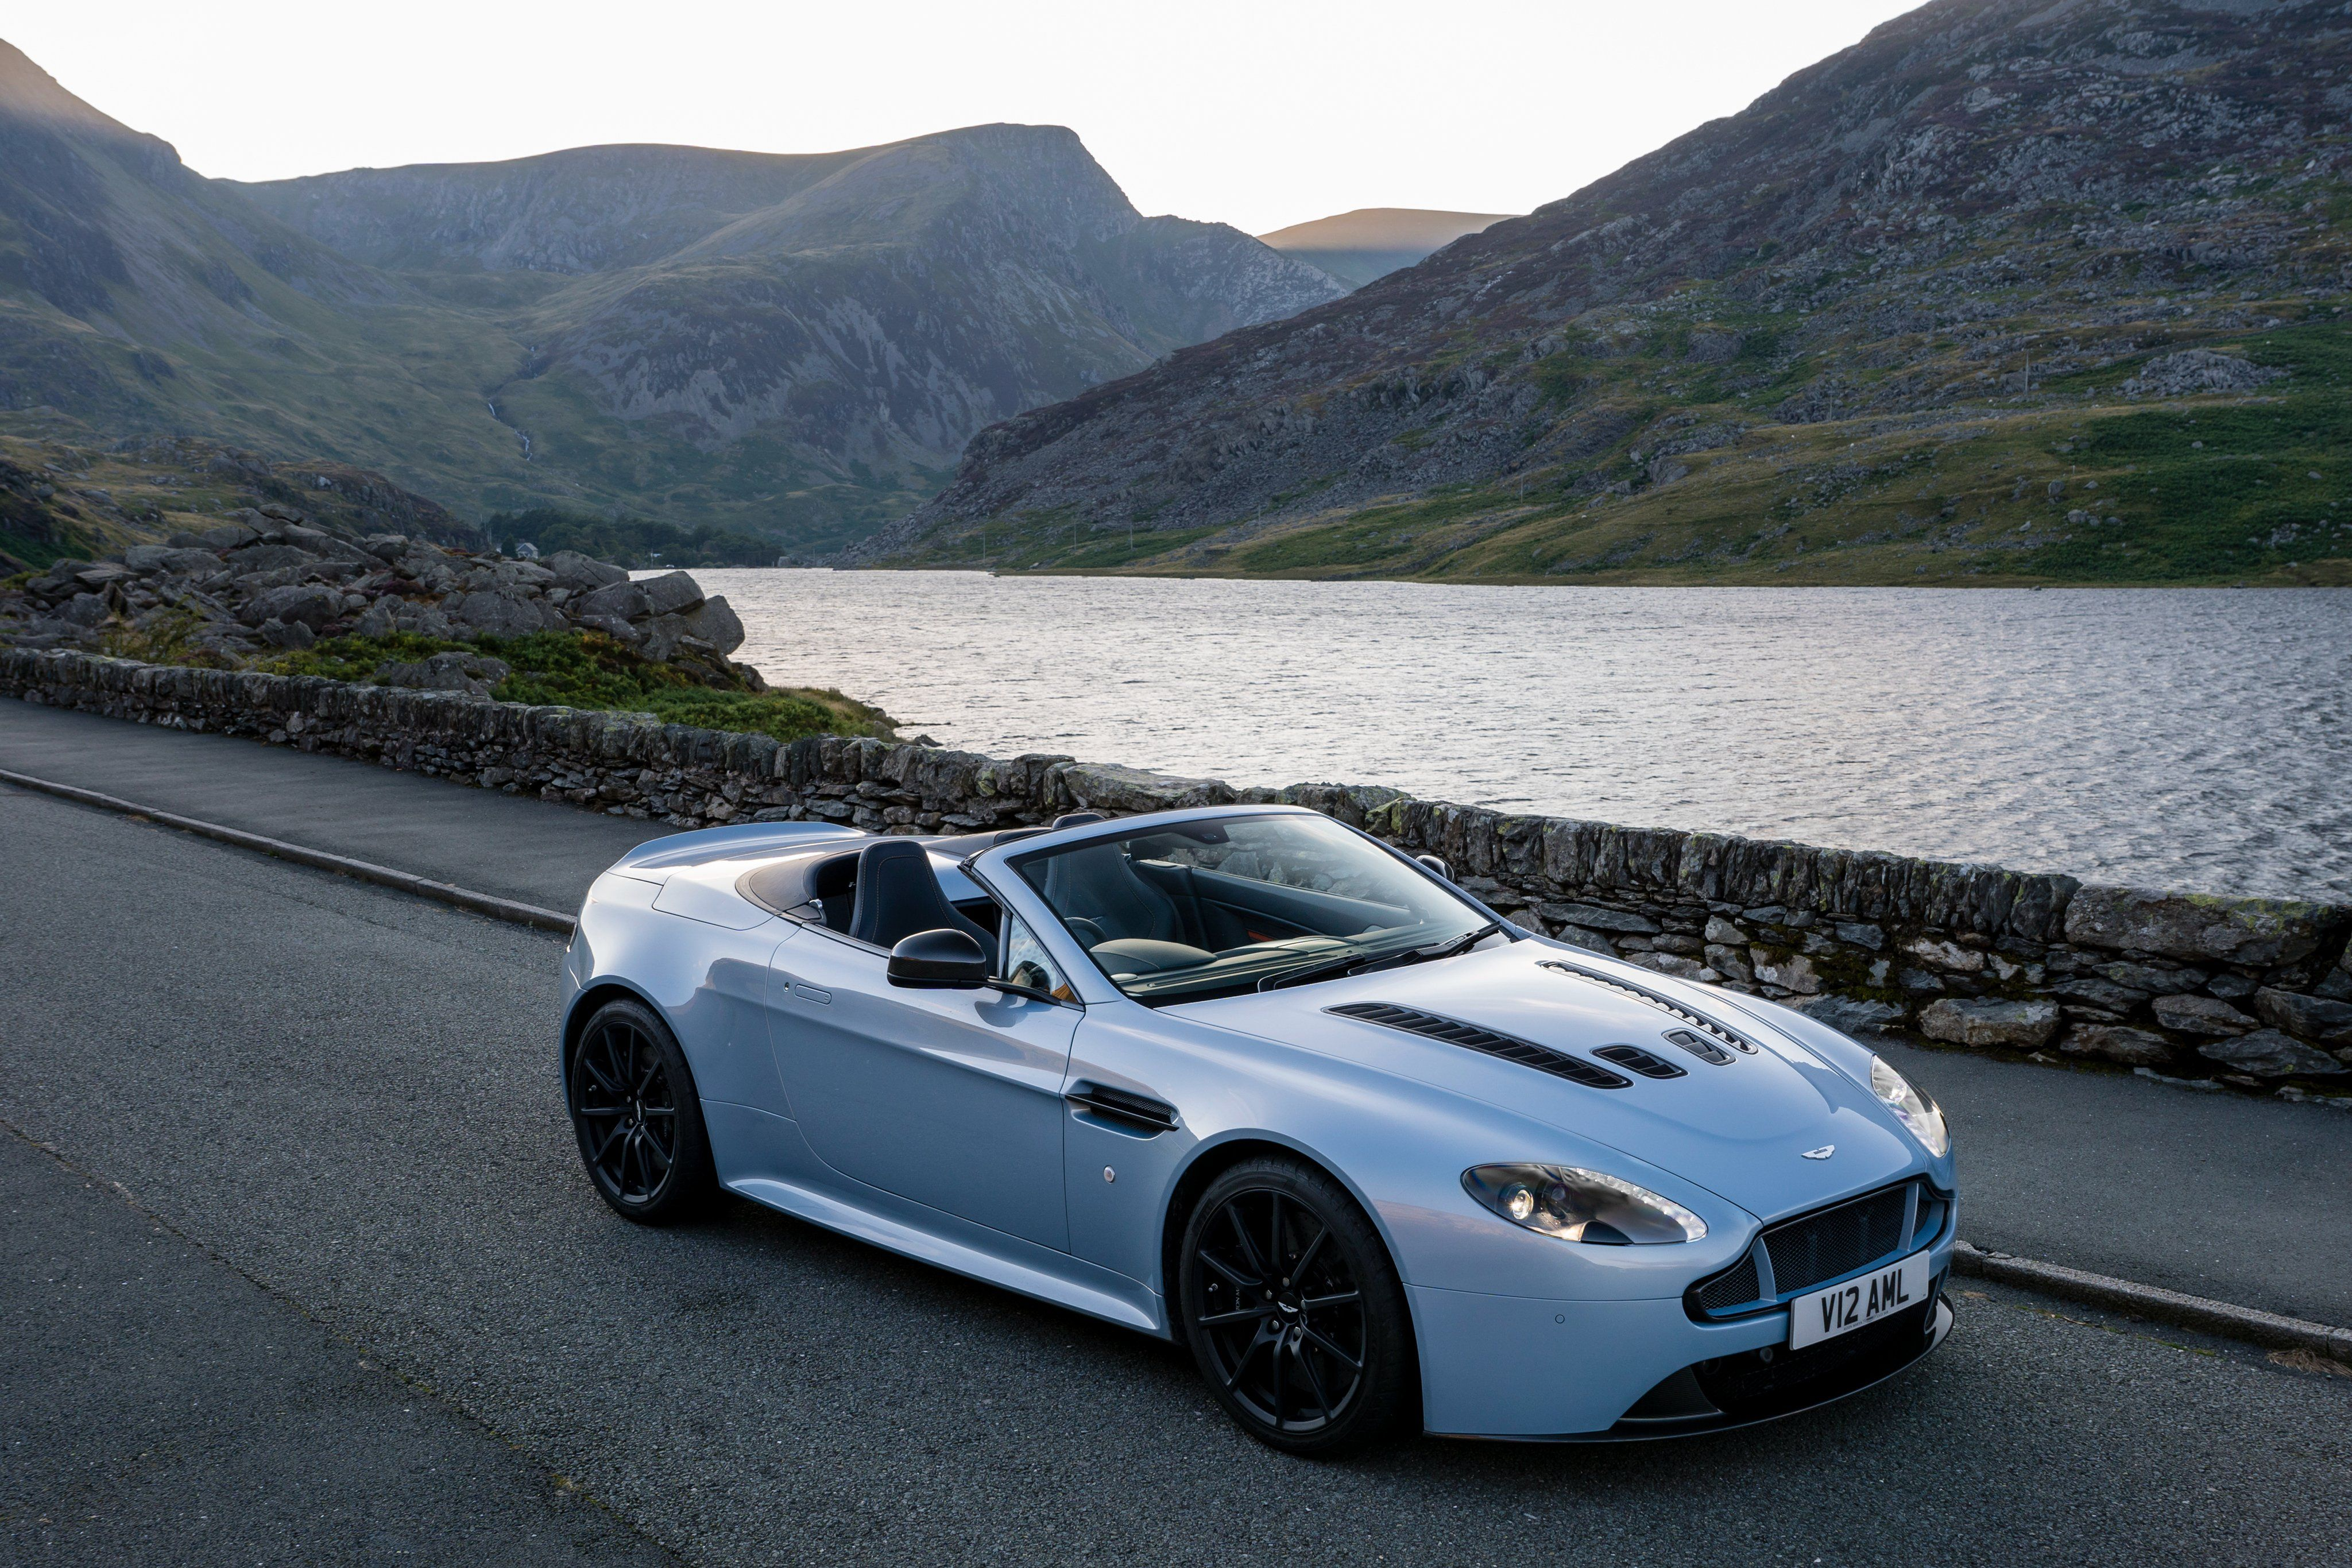 2015 Aston Martin Vantage Free PC Wallpapers Downloads